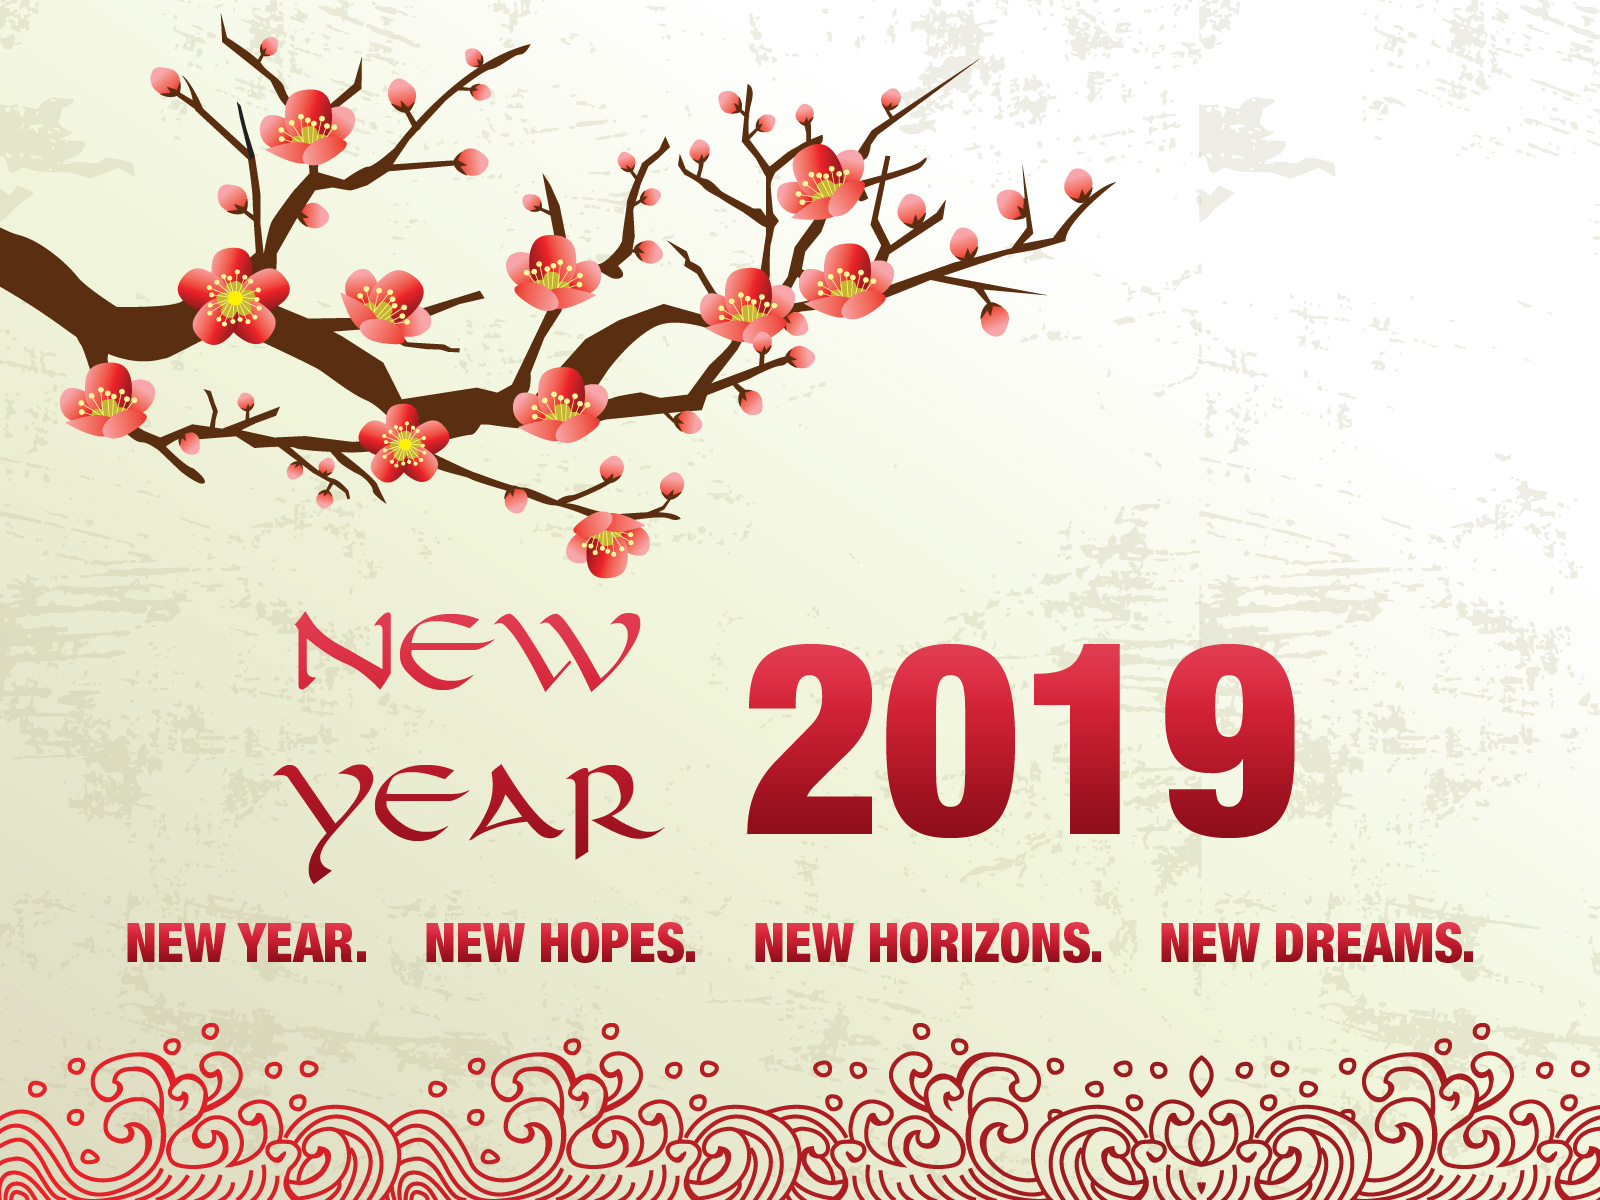 new year 2019 greetings wallpaper